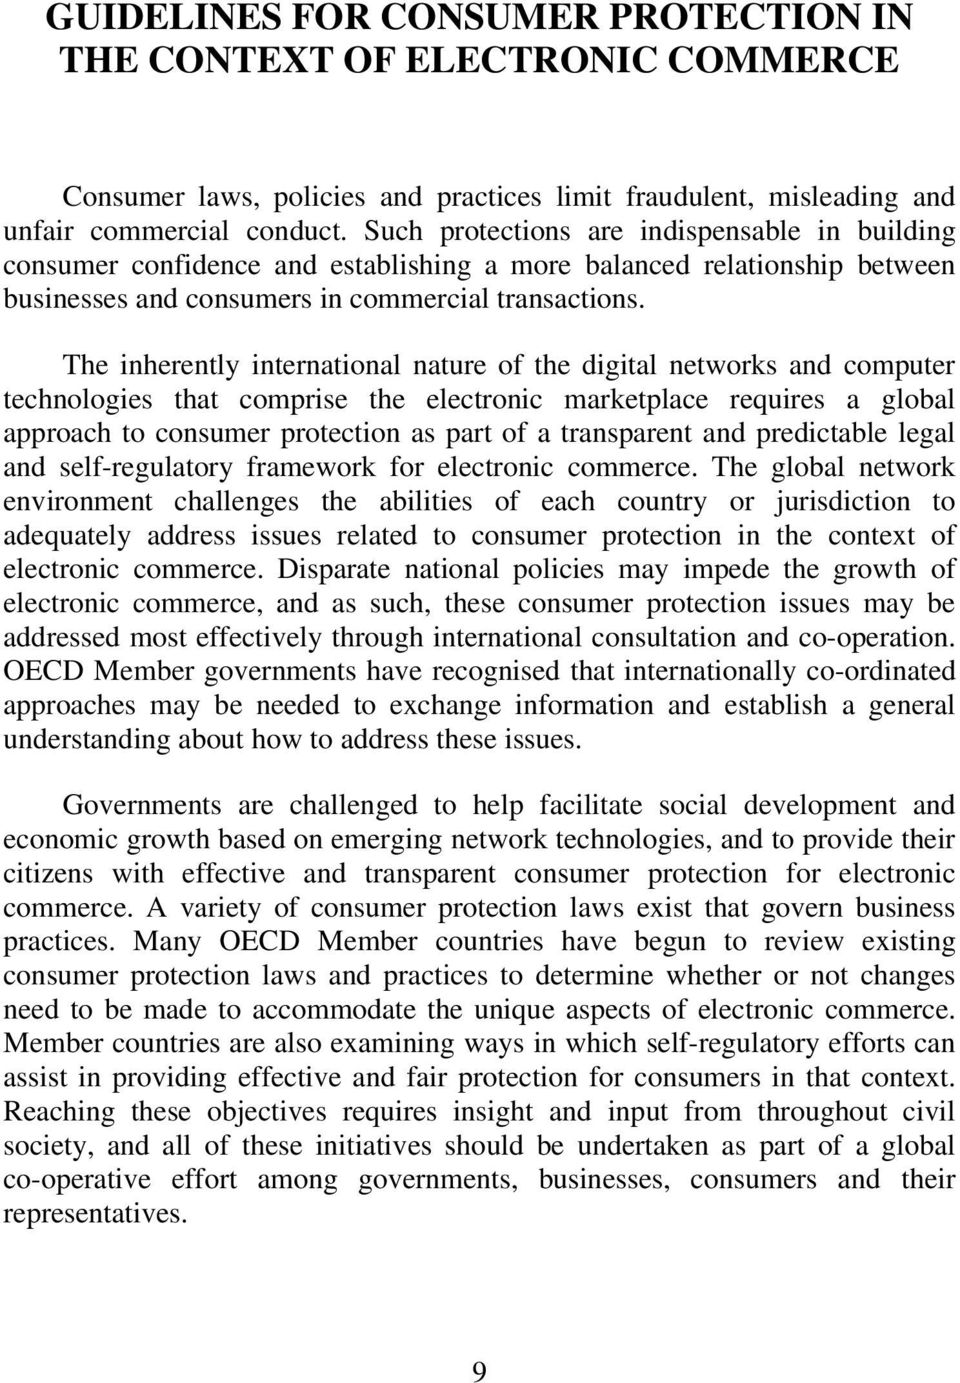 The inherently international nature of the digital networks and computer technologies that comprise the electronic marketplace requires a global approach to consumer protection as part of a